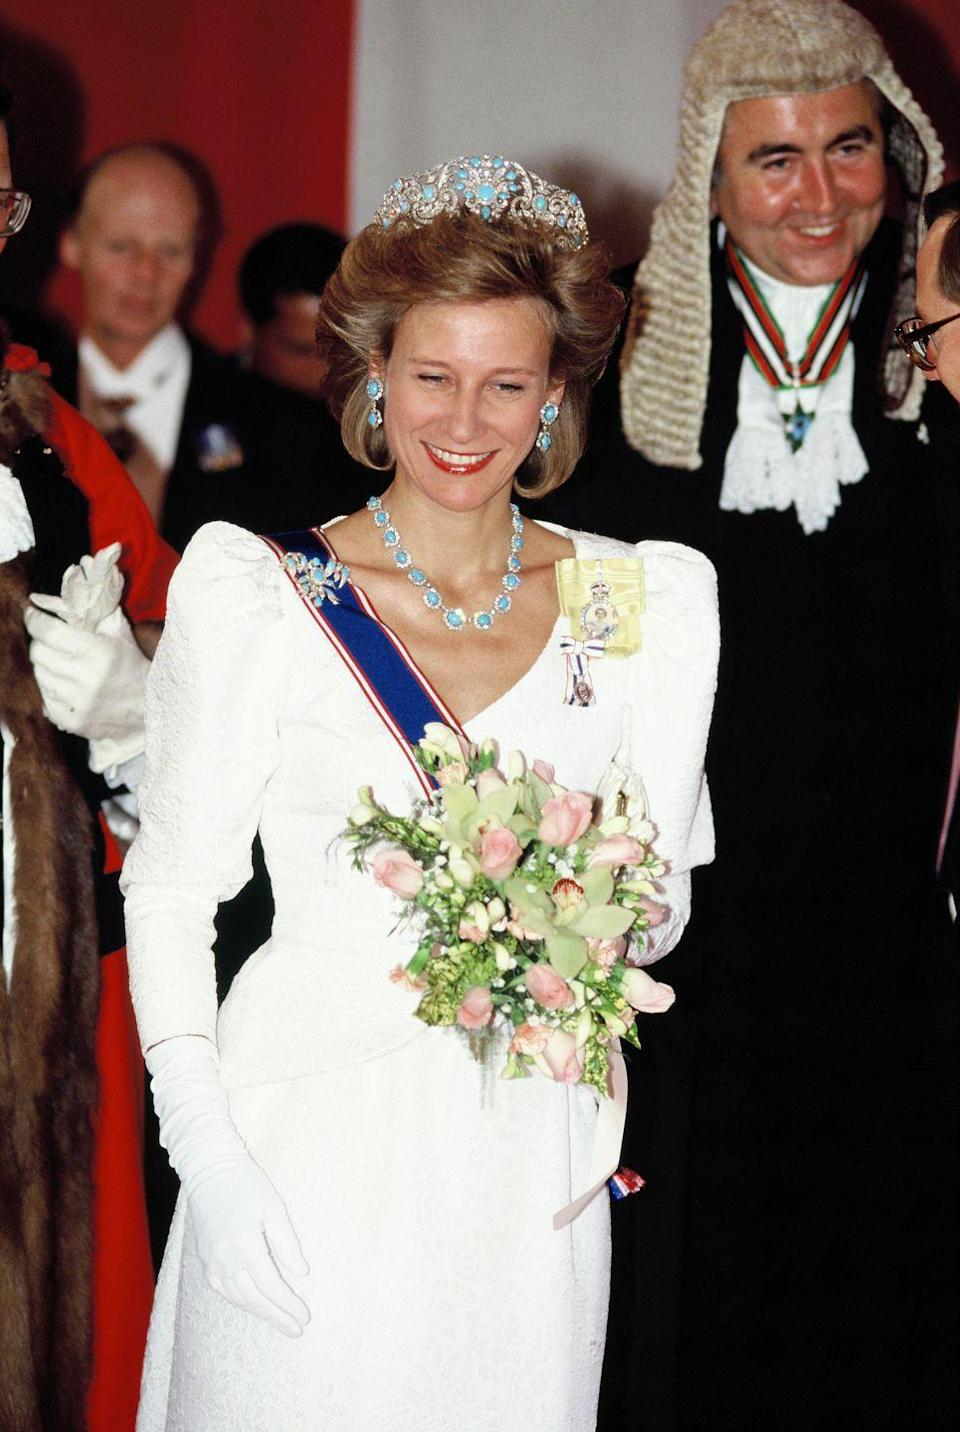 <p>Birgitte, Duchess of Gloucester, was photographed at a state banquet in 1989 wearing the Teck Turquoise Parure, which belonged to her grandmother-in-law, Queen Mary. The pieces, including a tiara, earrings, necklace, and brooches, were originally commissioned by Queen Mary's mother, Princess Mary, Duchess of Teck. The future Queen Mary inherited the pieces in stages. First, the brooches as a confirmation present, and then the rest in 1893 when she married the future King George V. She later passed down the parure as a wedding gift to her daughter-in-law Alice, Duchess of Gloucester. Today, it belongs to Alice's daughter-in-law Birgitte, wife of the current Duke of Gloucester (who is the queen's cousin). </p>